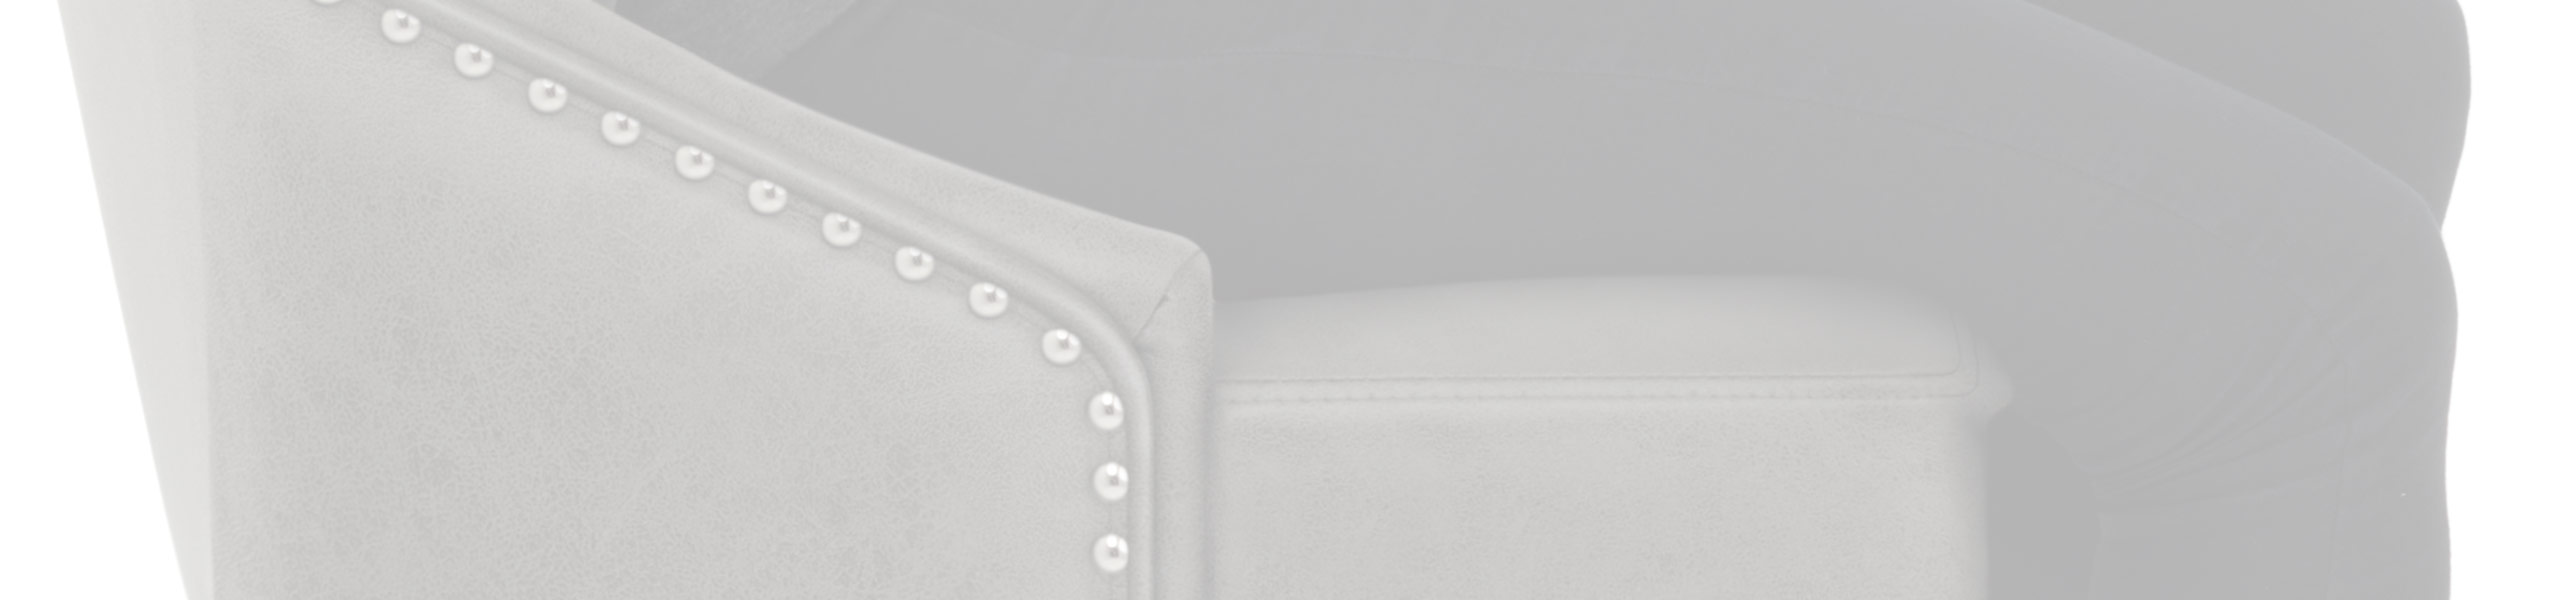 Loxley Stool Grey Review Banner